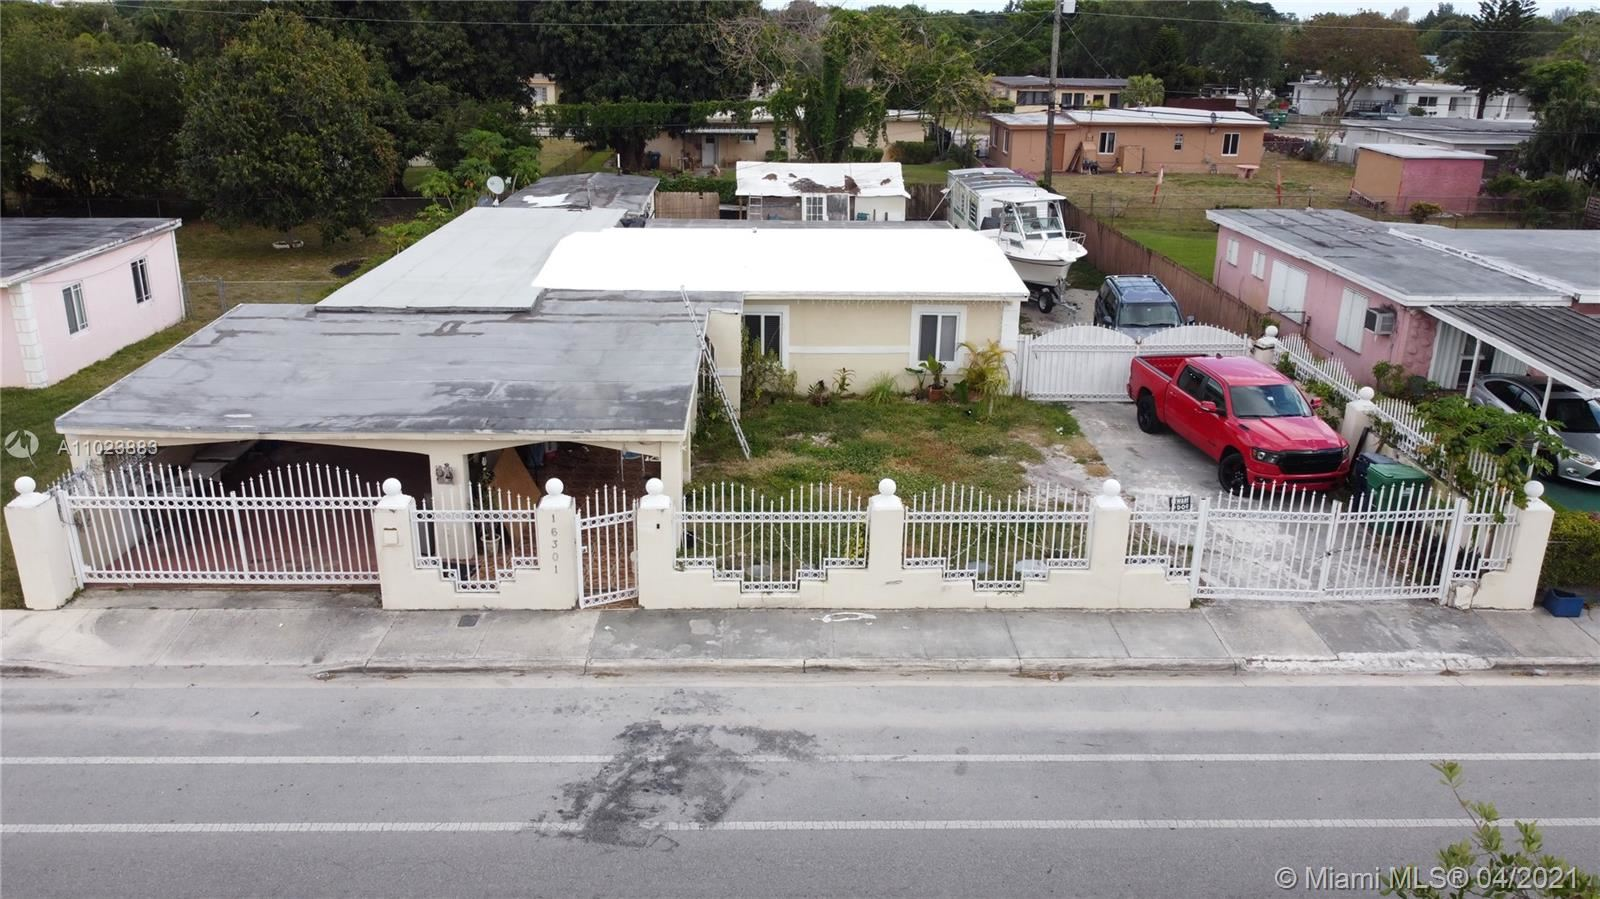 16301 NW 22nd Ave, Miami Gardens, FL 33054 - #: A11023883